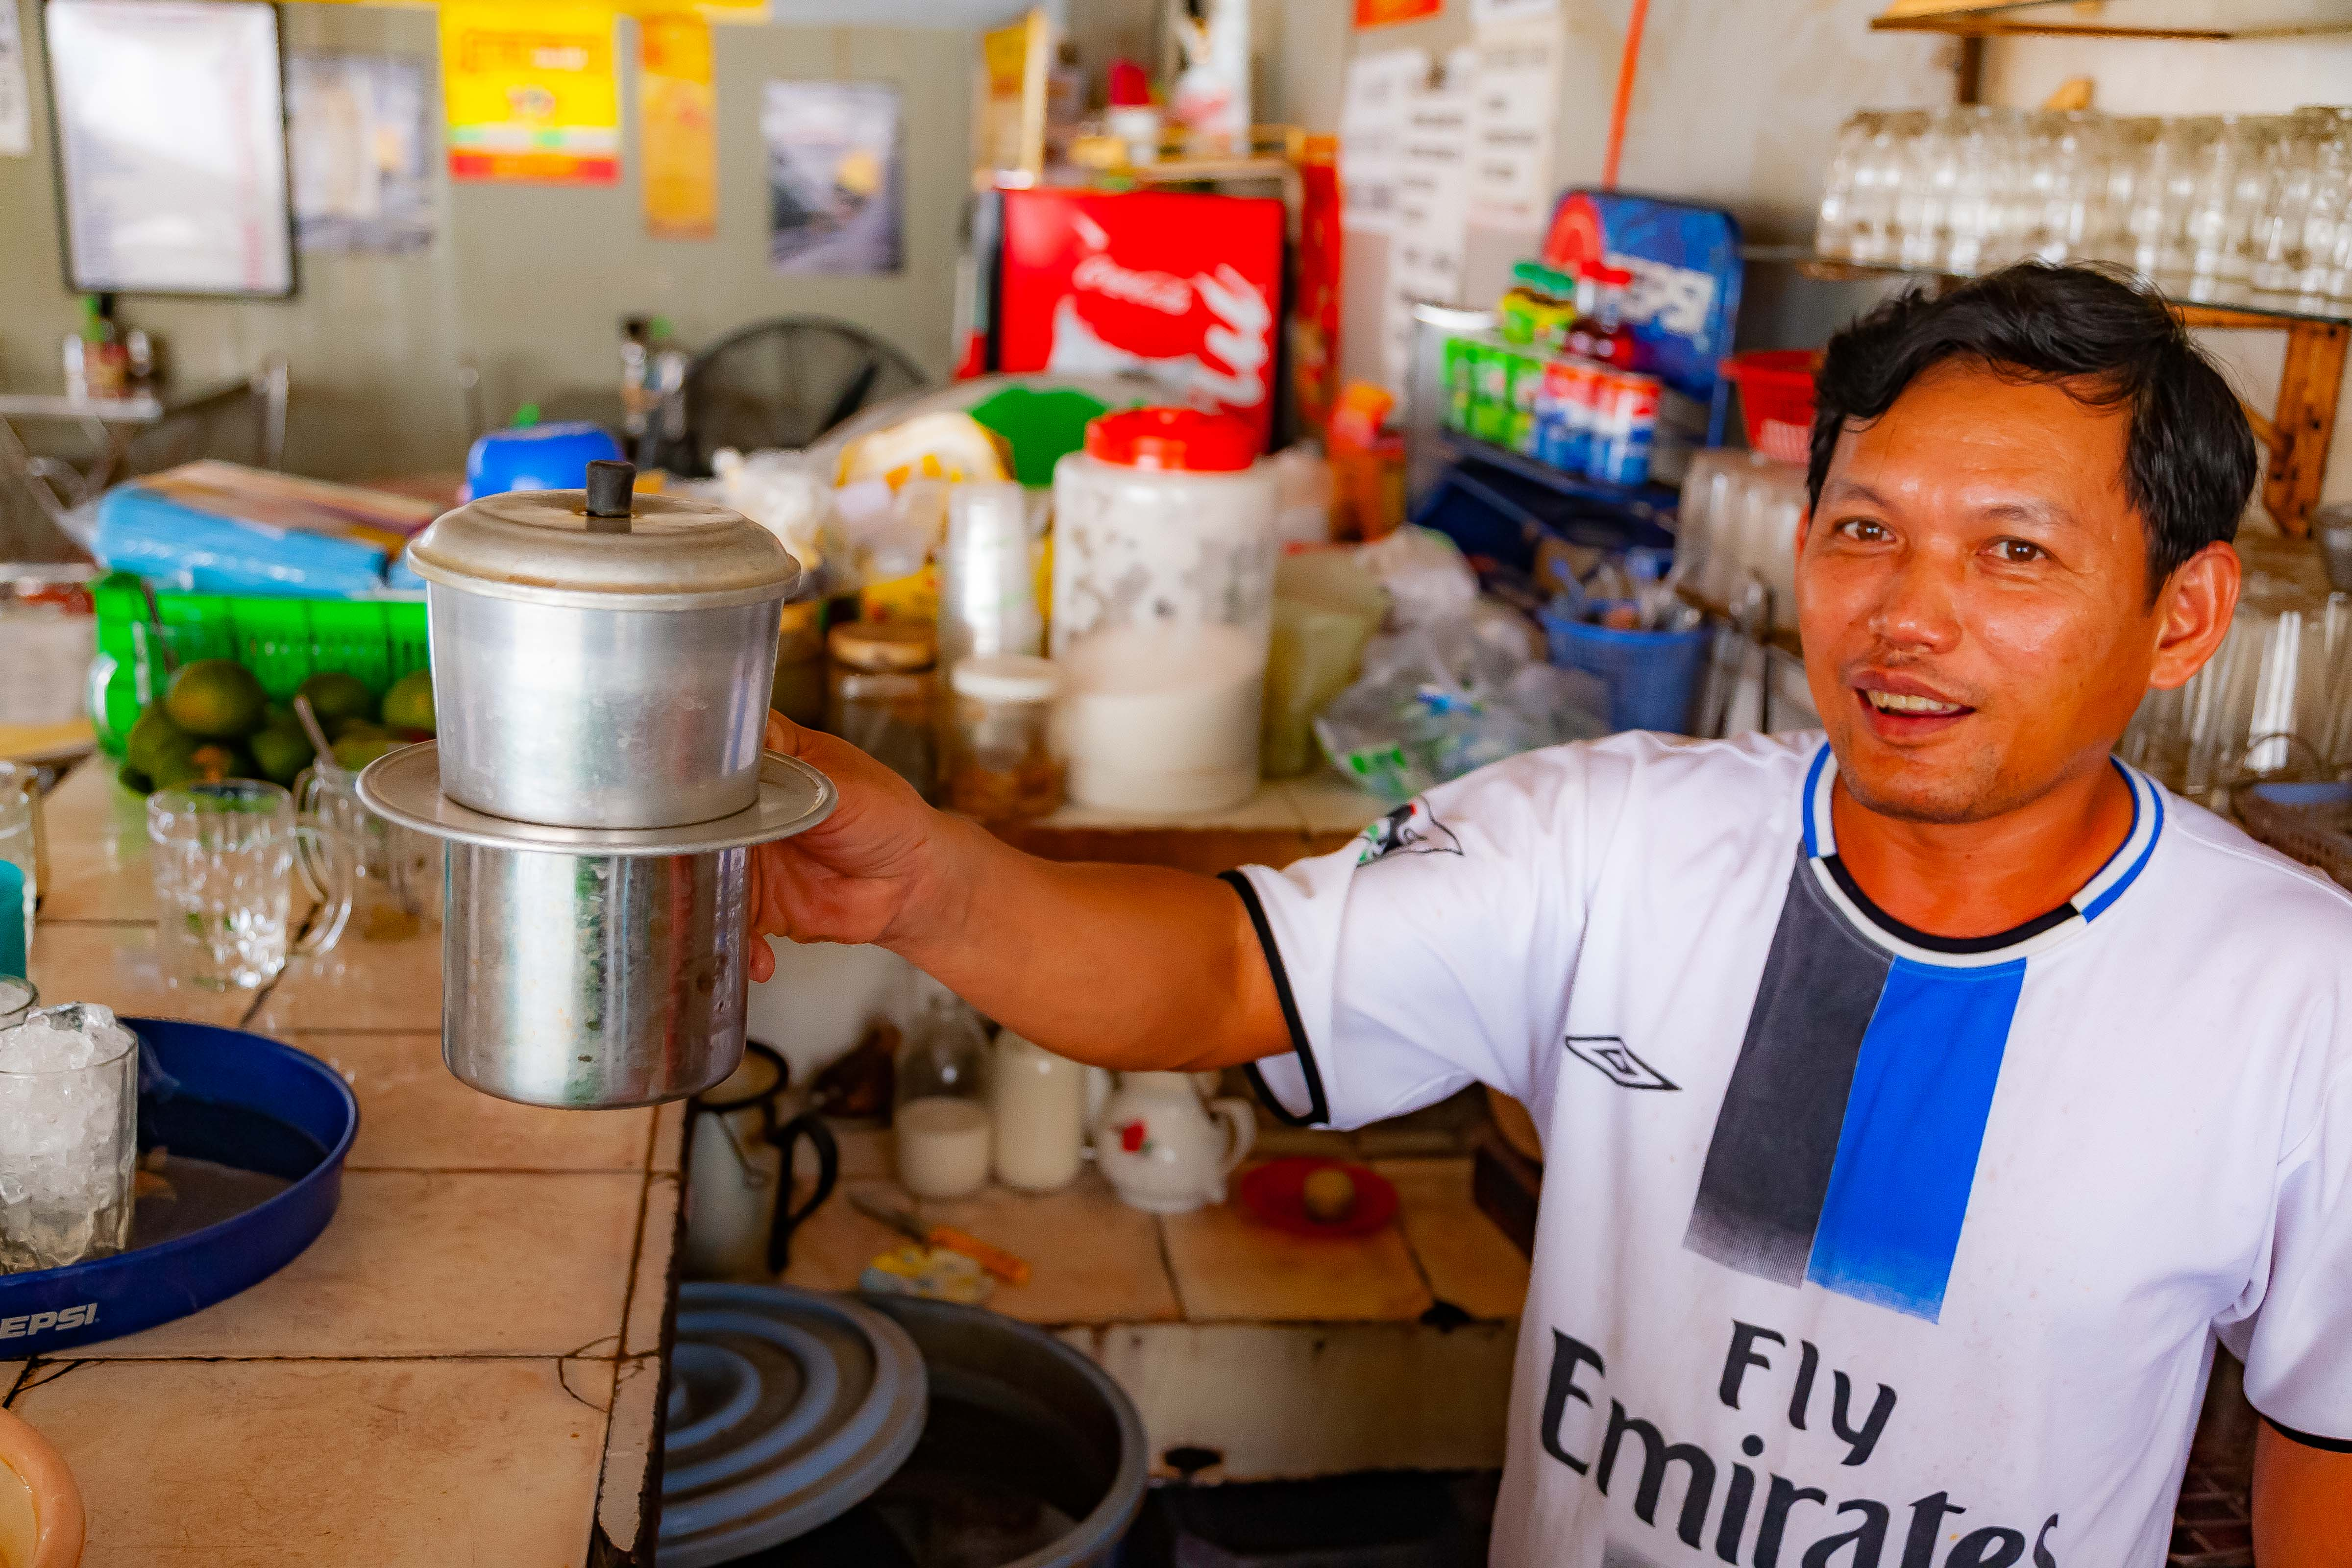 Vietnam, An Giang Prov, Vietnamese Coffee Maker, 2010, IMG 1802